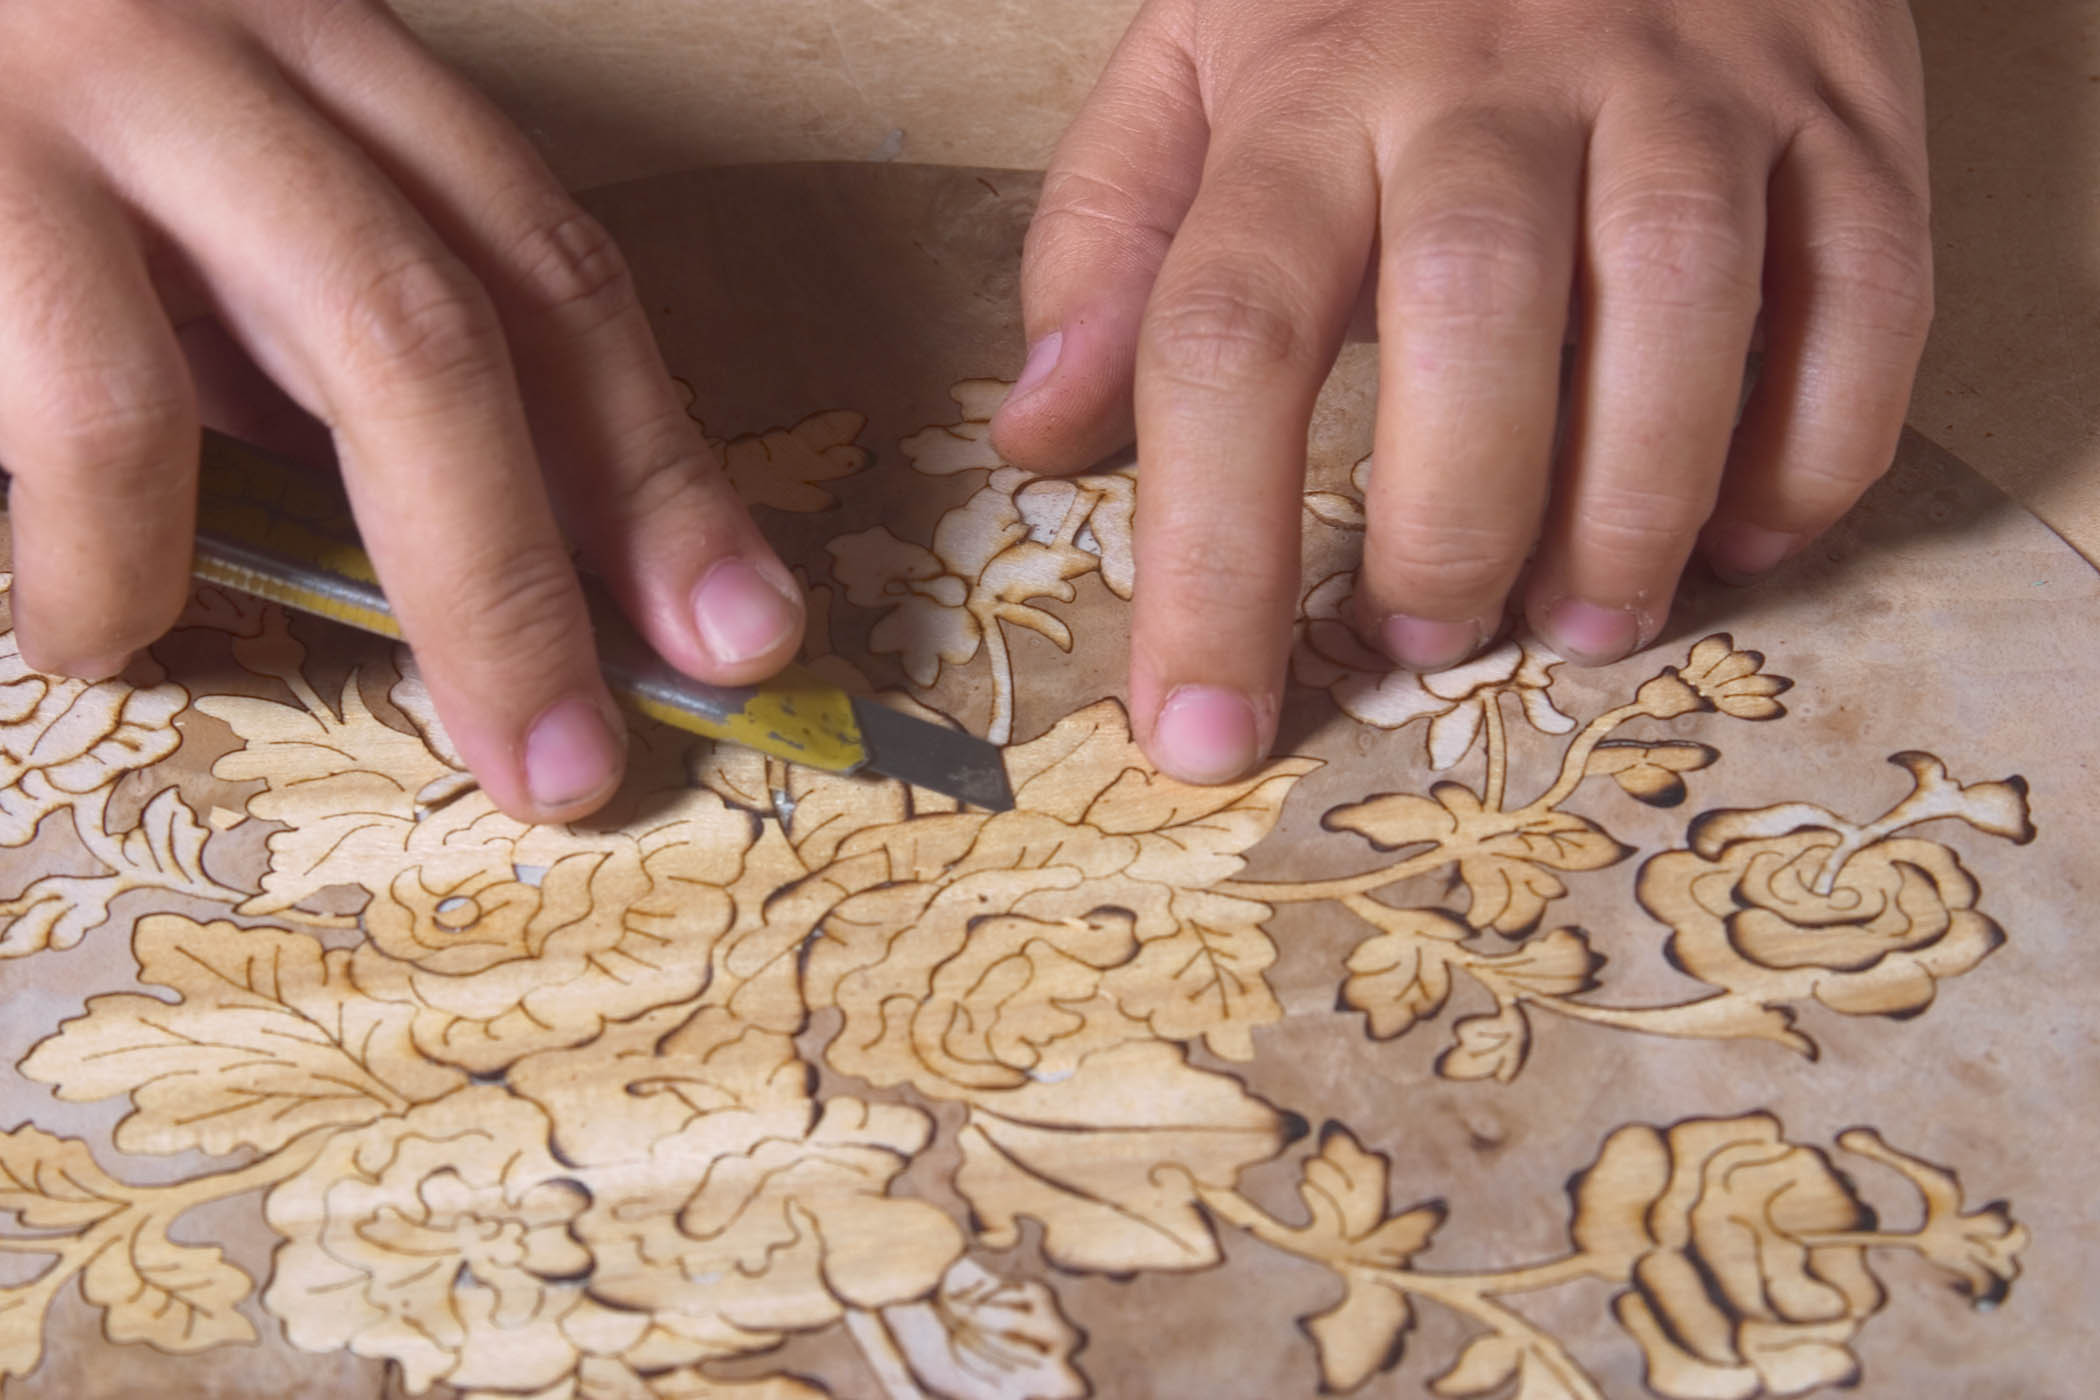 Dicovering the Ancient Art of Marquetry craftsmanship artisan hands ancient art of marquetry Discovering the Ancient Art of Marquetry Dicovering the Ancient Art of Marquetry craftsmanship artisan hands